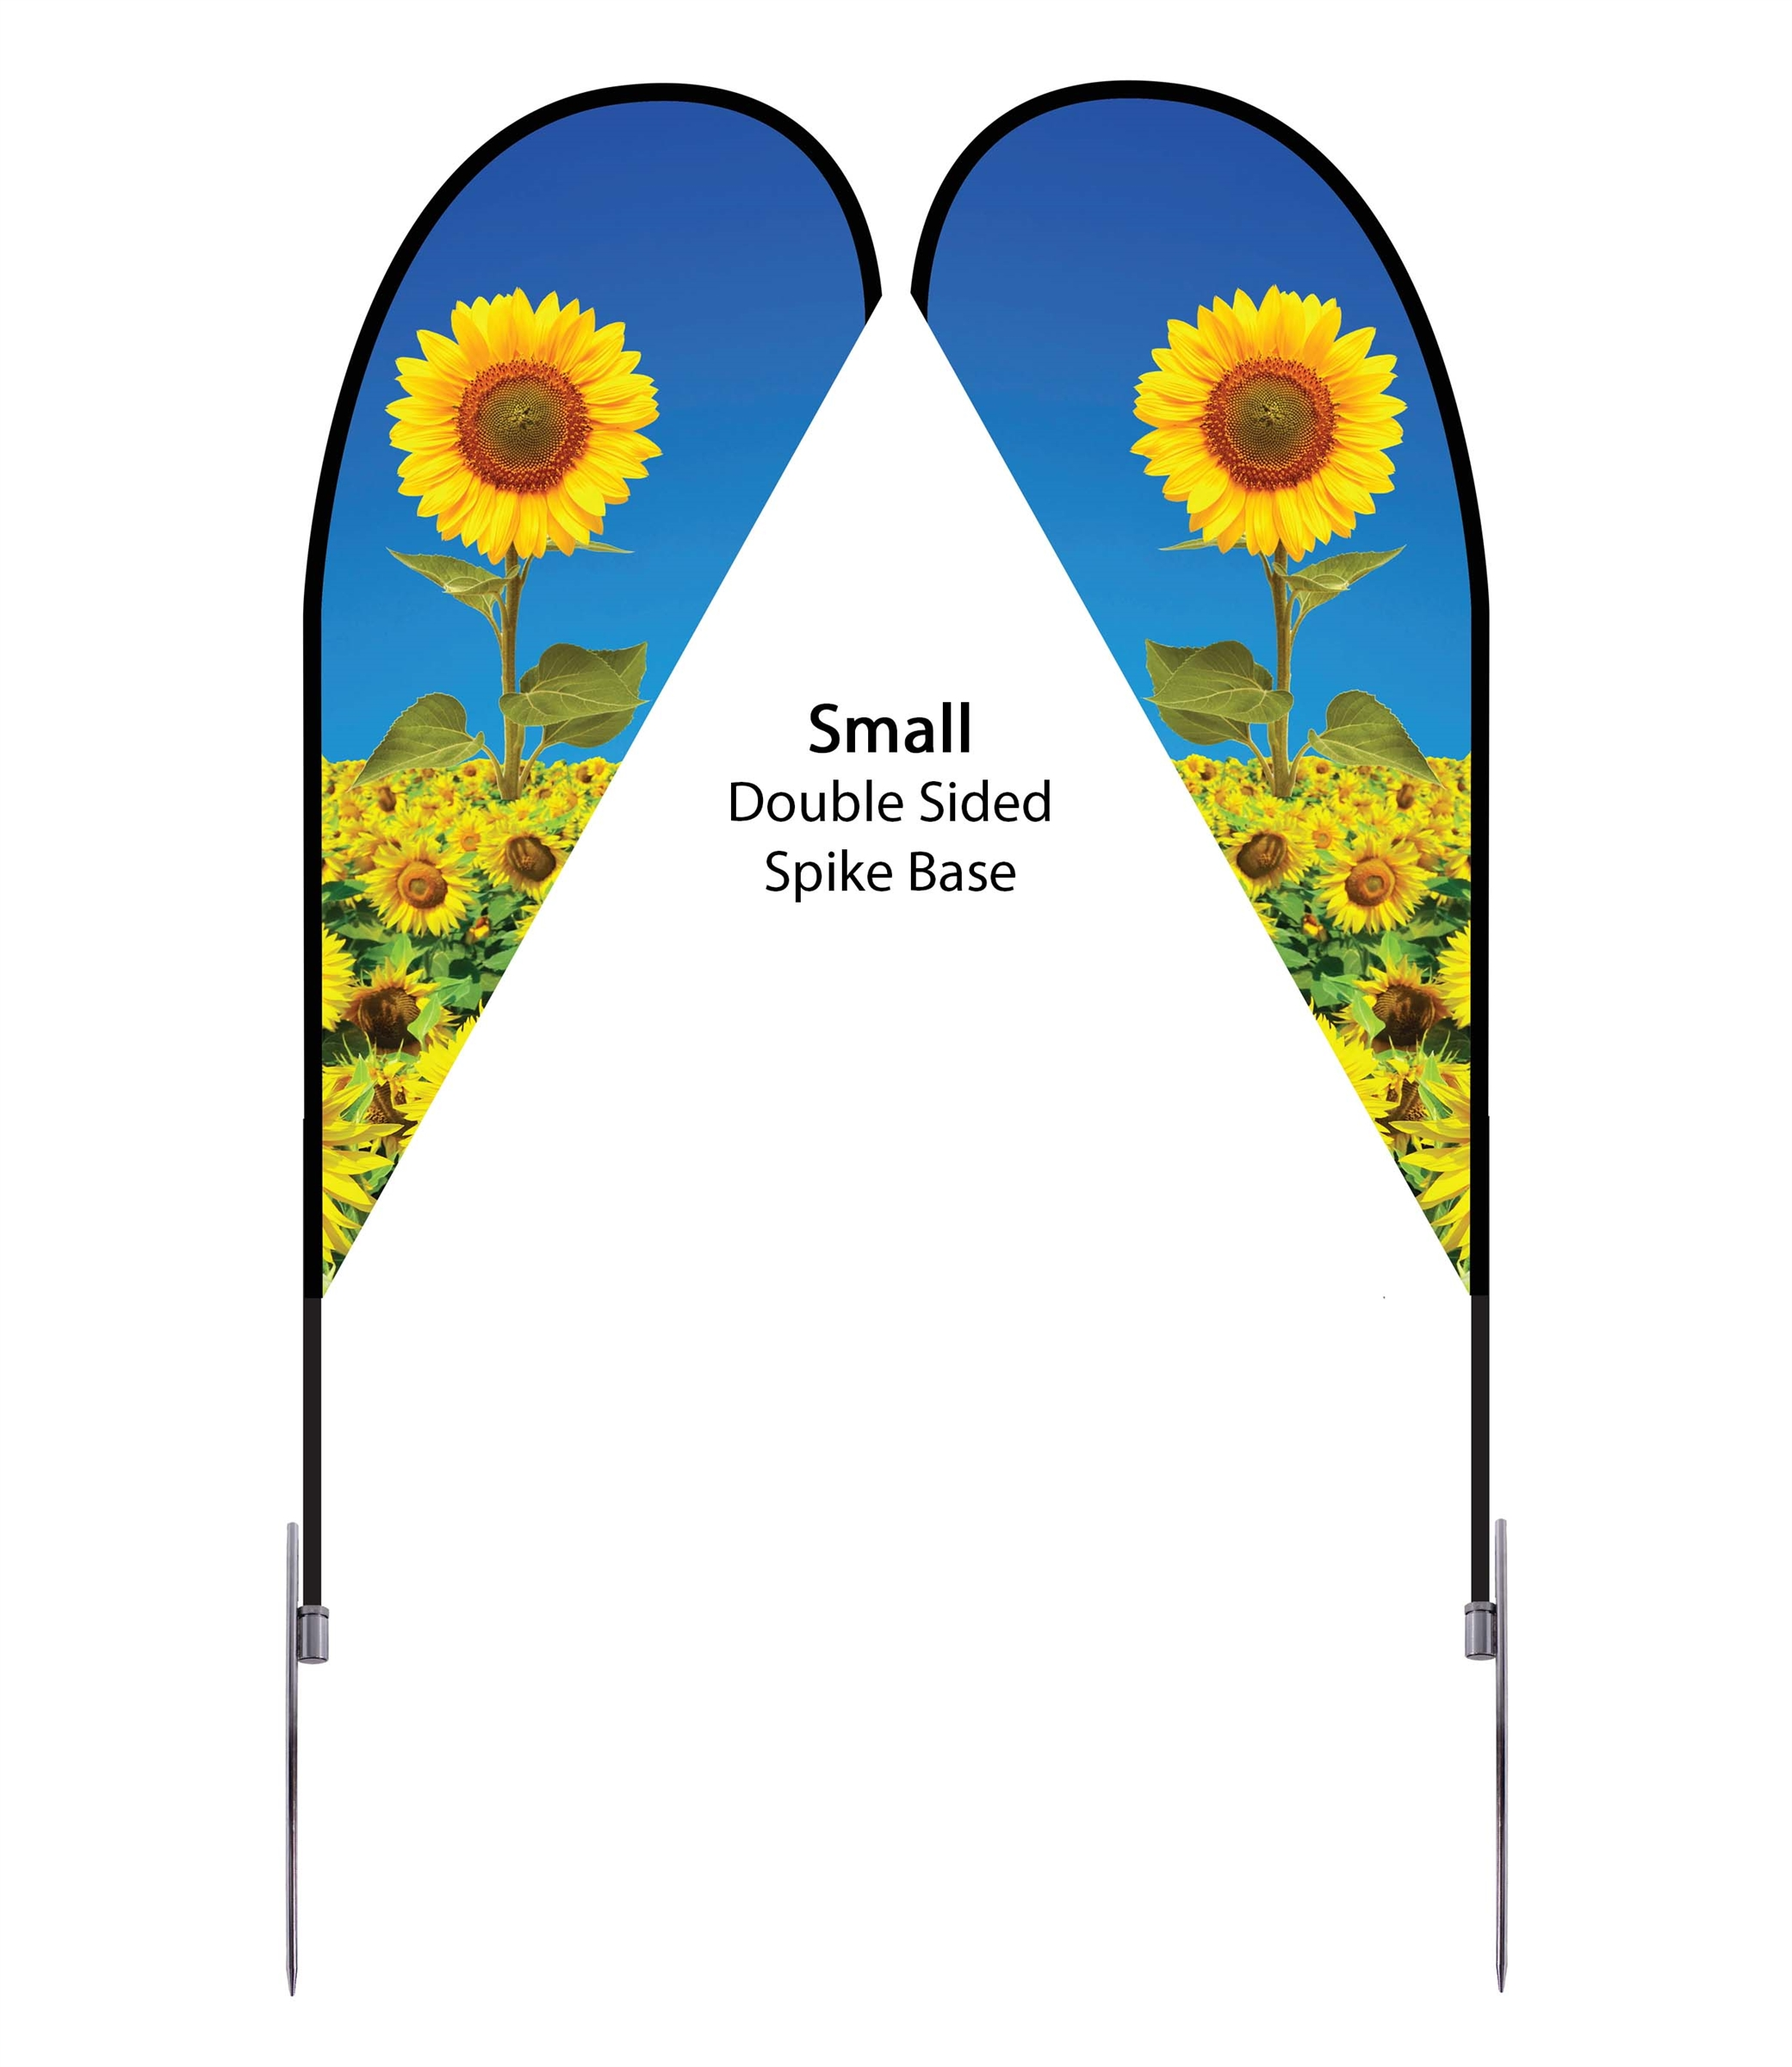 Teardrop Flag 7' Premium Double-Sided With Spike Base (Small)